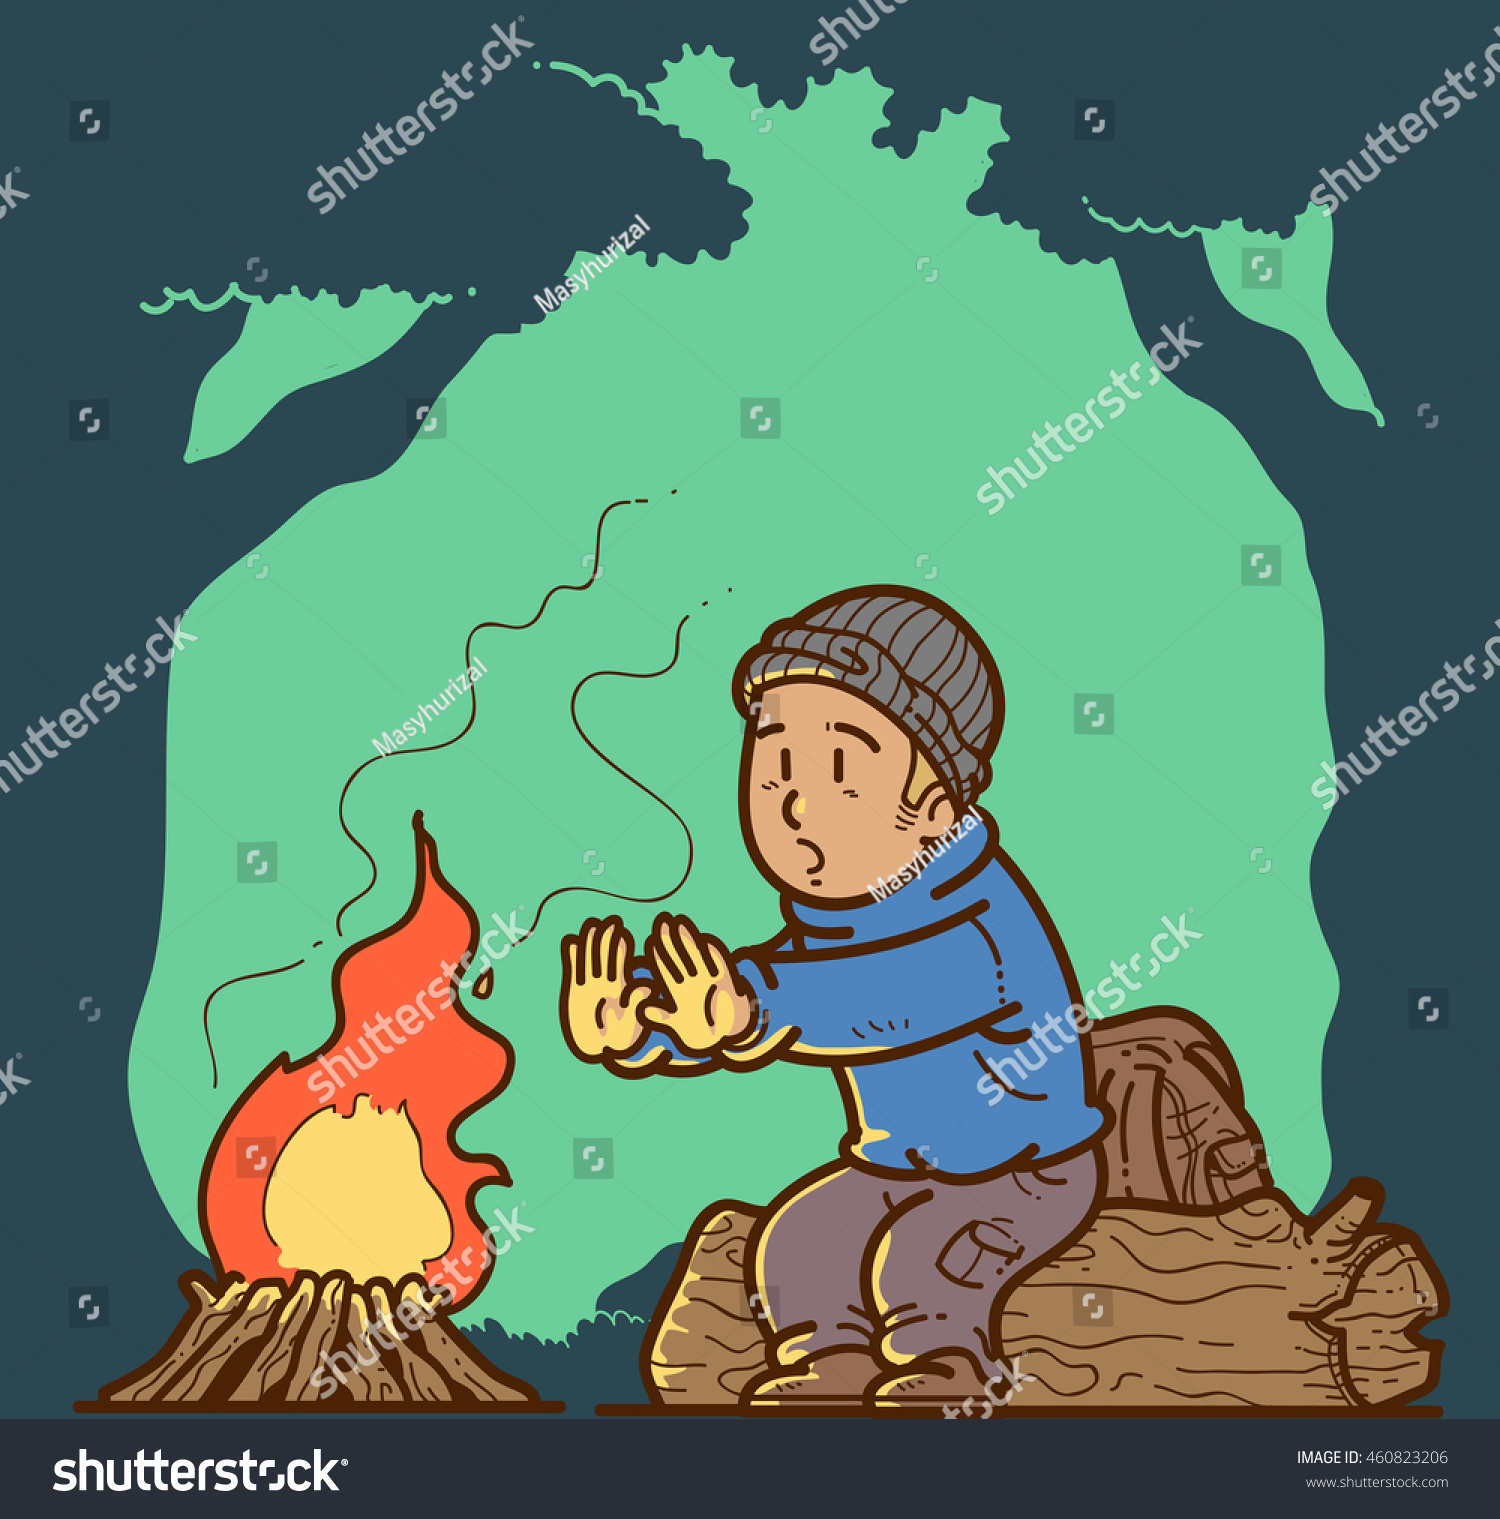 Bonfire warmth pencil and. Campfire clipart scene